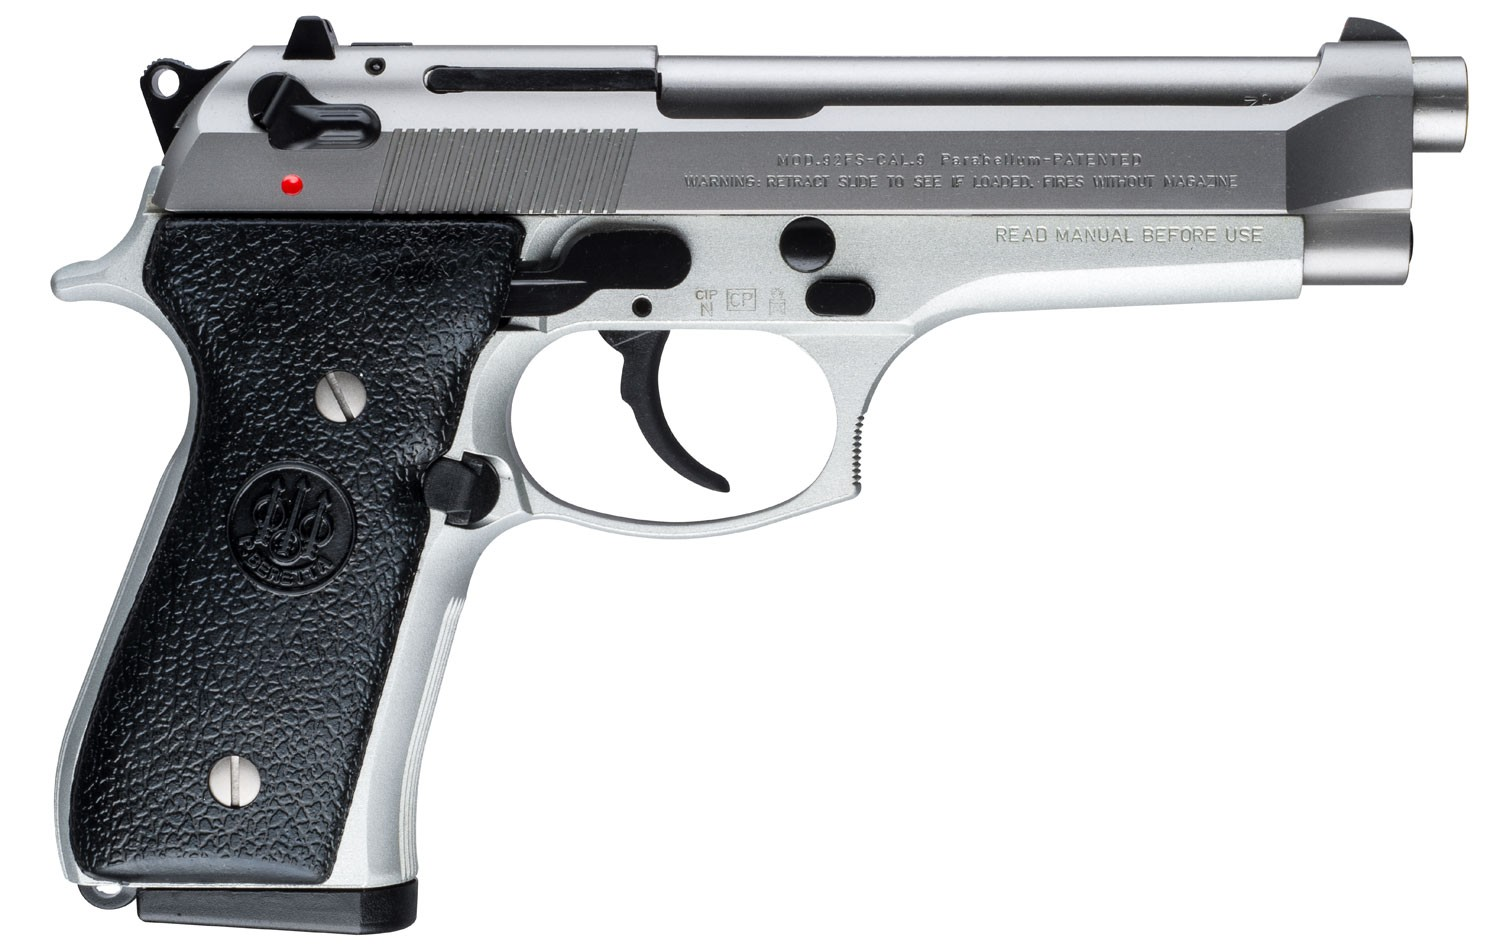 "<BODY><P STYLE=""FONT-FAMILY:ARIAL;""><P ALIGN=""LEFT""> Manufacturer: Beretta</BR> Manufacturer Part #: JS92F520</BR> Model: 92FS</BR> Action: Semi-automatic</BR> Caliber: 9MM</BR> Barrel Length: 4.9""</BR> Frame/Material: Alloy</BR> Finish/Color: Stainless</BR> Capacity: 10Rd</BR> <H1 STYLE=""COLOR:GREEN"">$775</H1></P></BODY></HTML>"